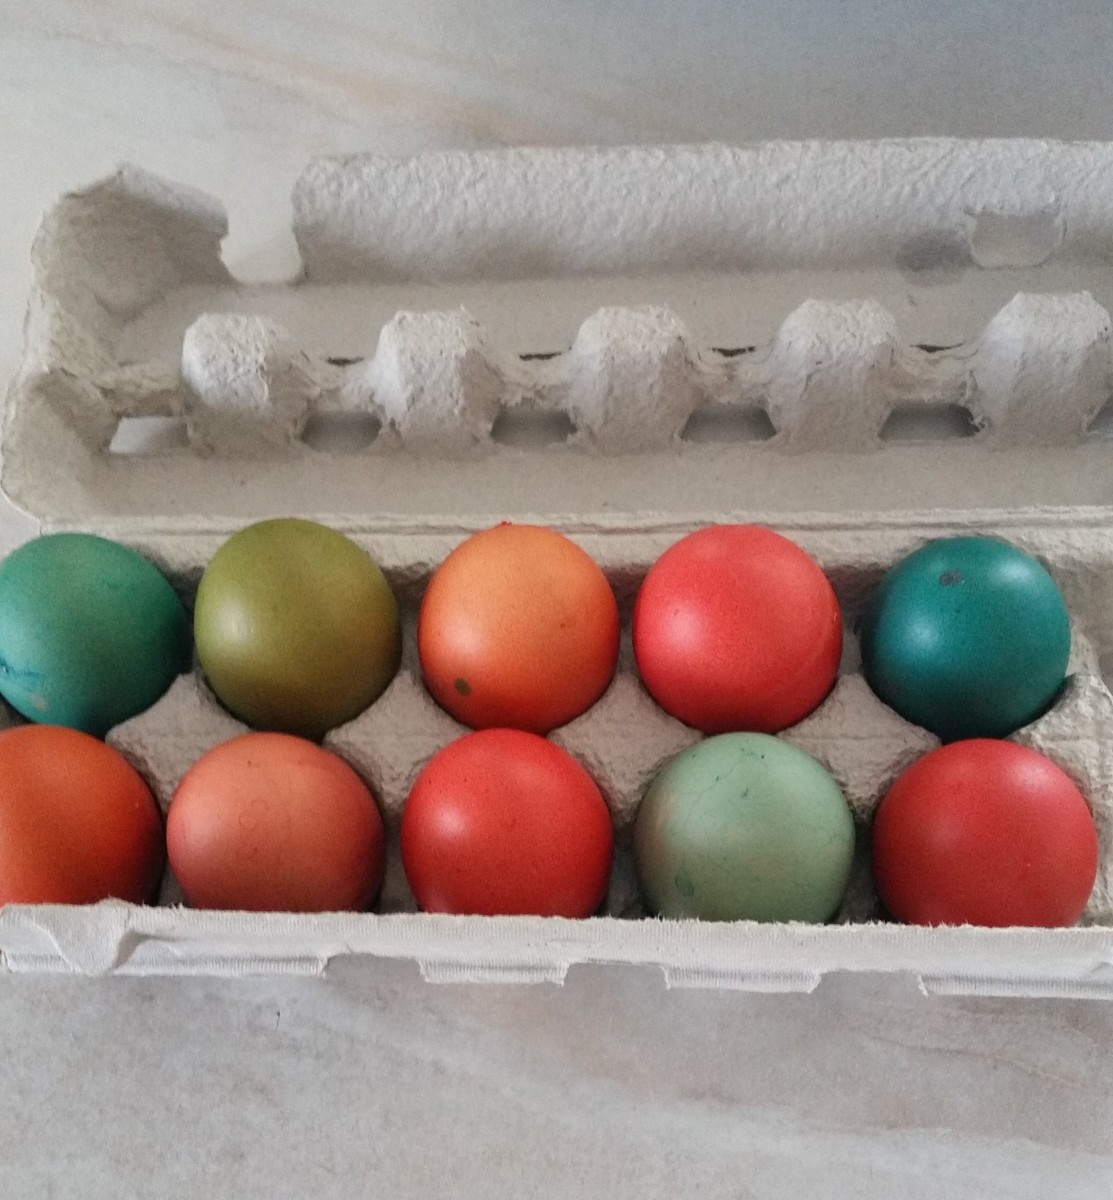 You're all done! A dozen vibrant, dyed eggs are ready for the Easter table.